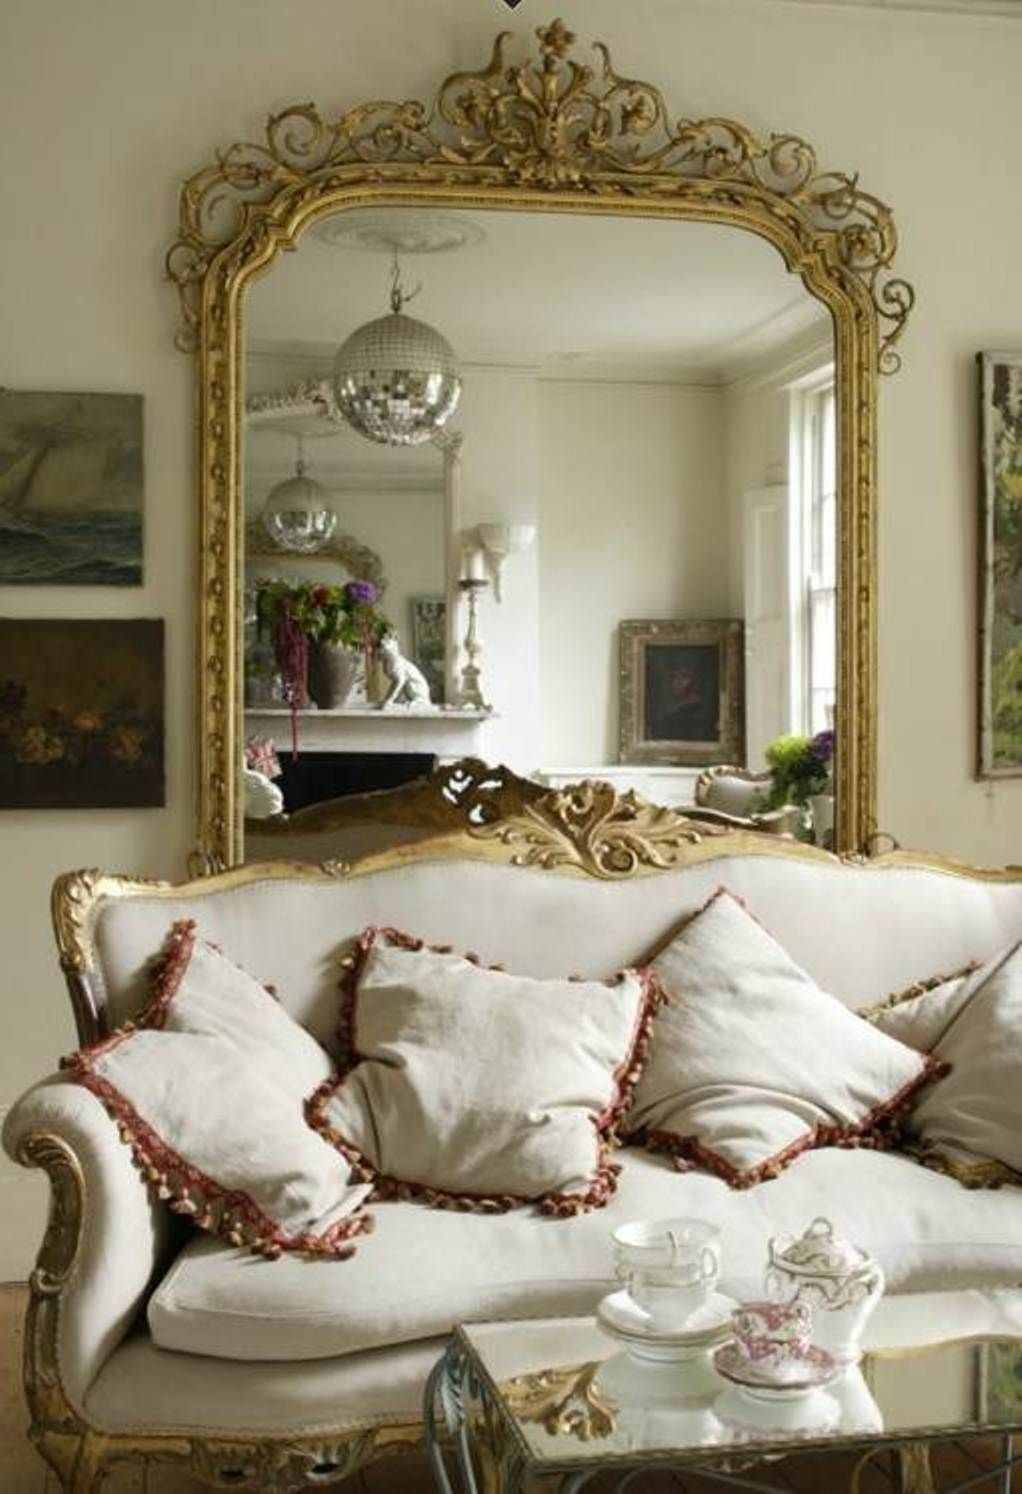 Decorative wall mirrors for living room decorative walls for Big wall pictures for living room